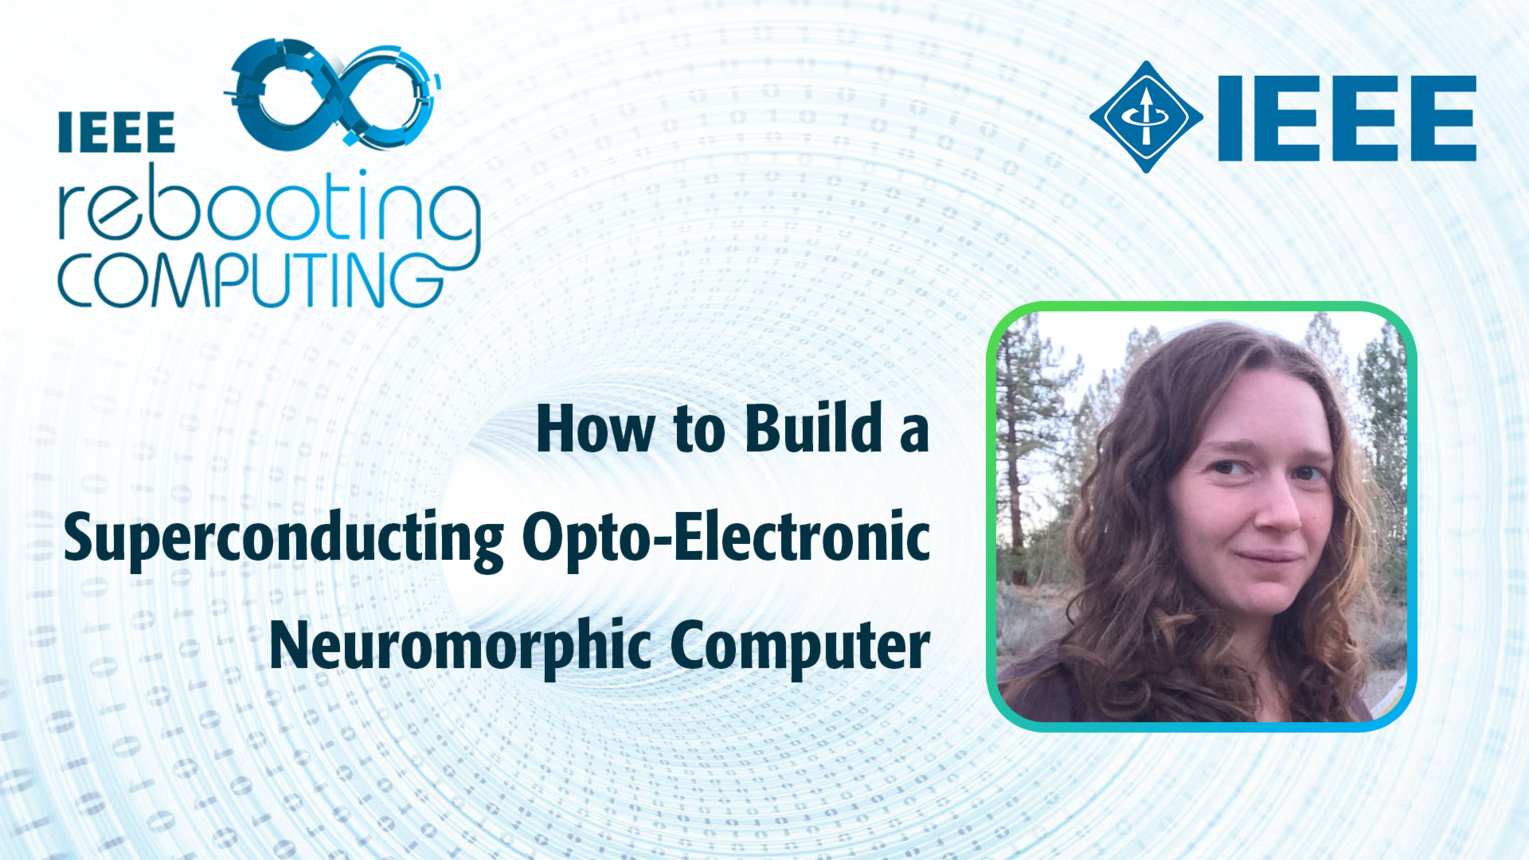 How to Build a Superconducting Opto-Electronic Neuromorphic Computer - Sonia Buckley - ICRC 2018